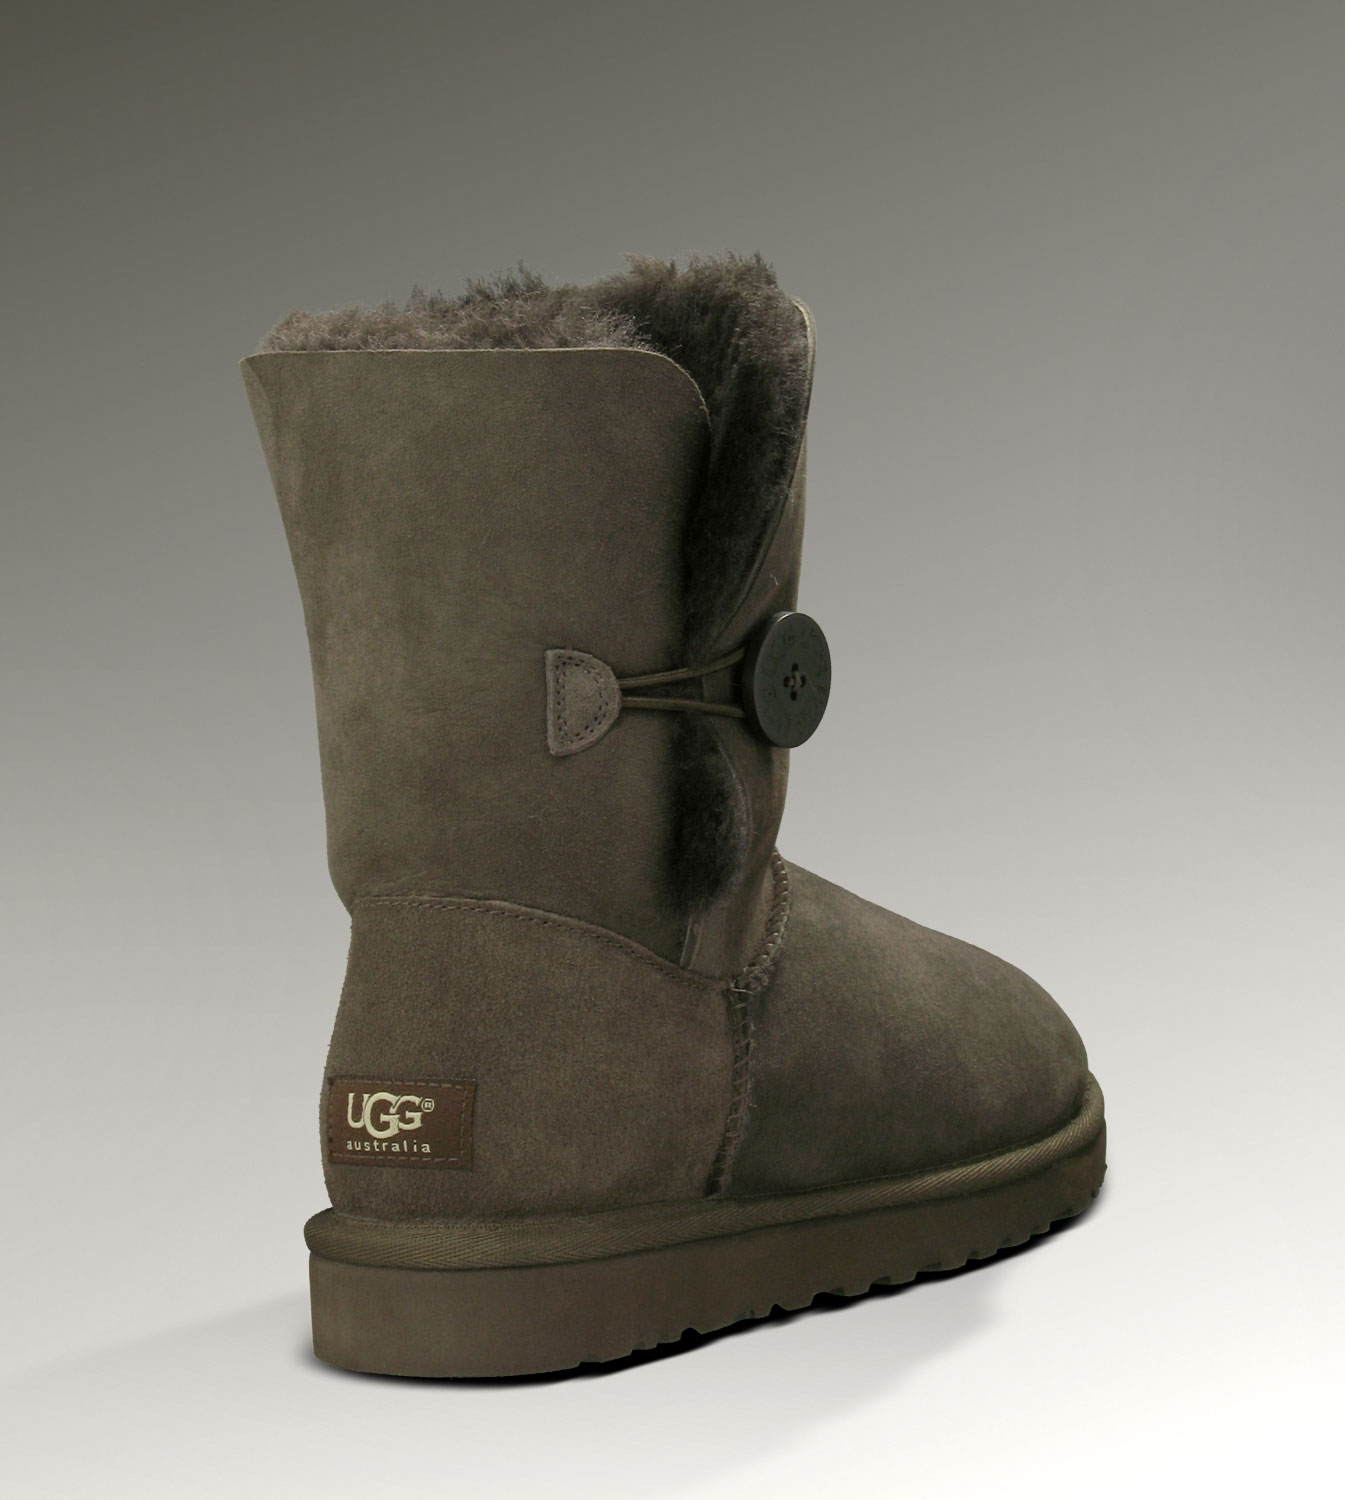 UGG Bailey Button 5803 Chocolate Boots